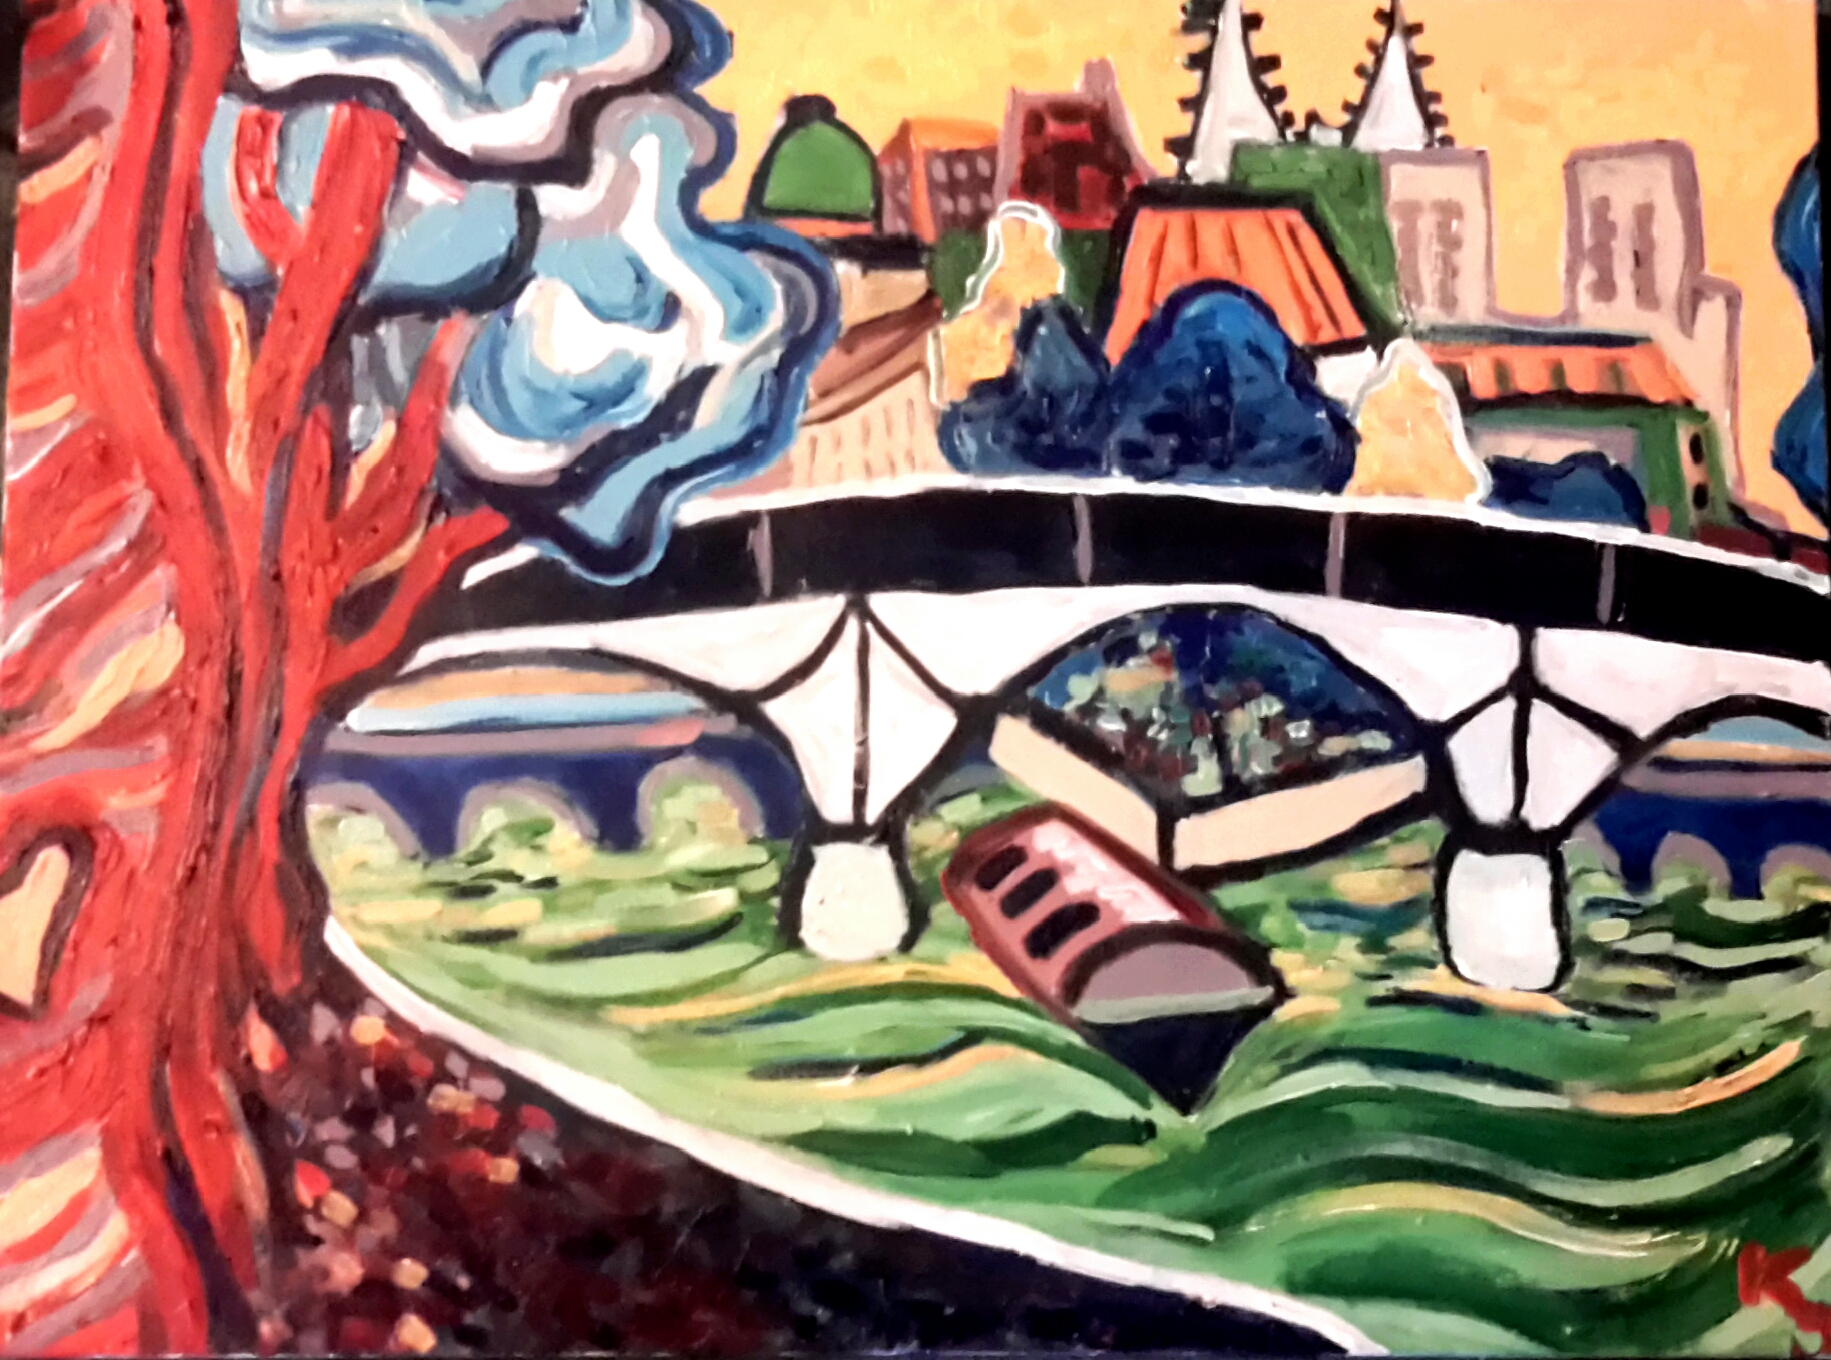 """Paris, France -Overlooking the Seine, facing upstream towards Ile de la Cité with the spires of Notre Dame in the distance. The nearby trees had beautiful carvings of hearts and names. This painting is 24""""w by 18""""h, $130,  for sale here ."""